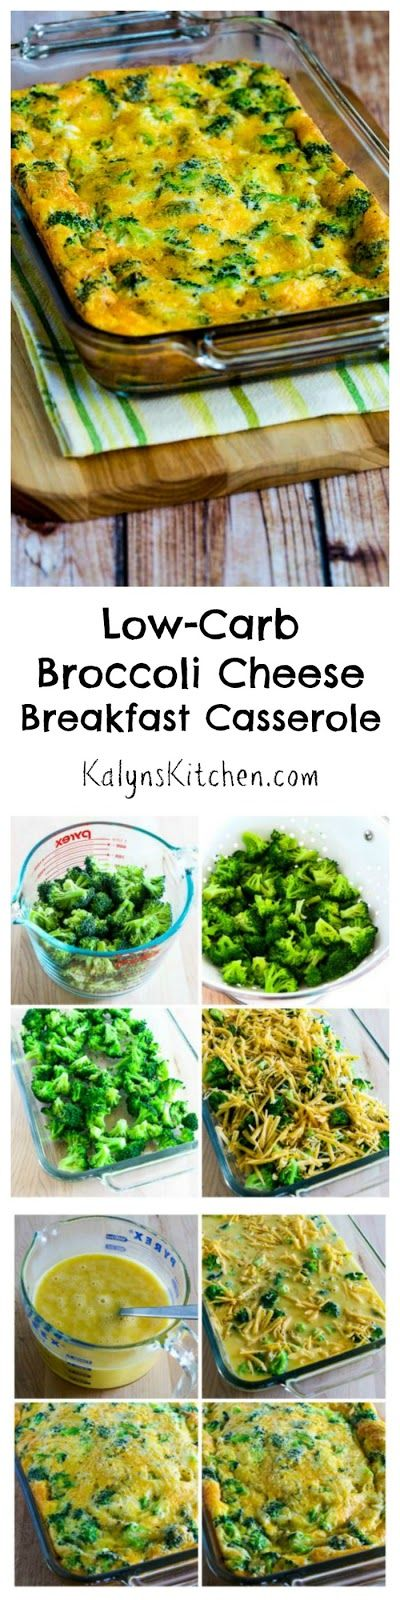 This easy and healthy Low-Carb Broccoli Cheese Breakfast Casserole is a recipe I make over and over; love having this in the fridge for a quick breakfast! (Gluten-Free, Meatless Monday) [from KalynsKitchen.com]